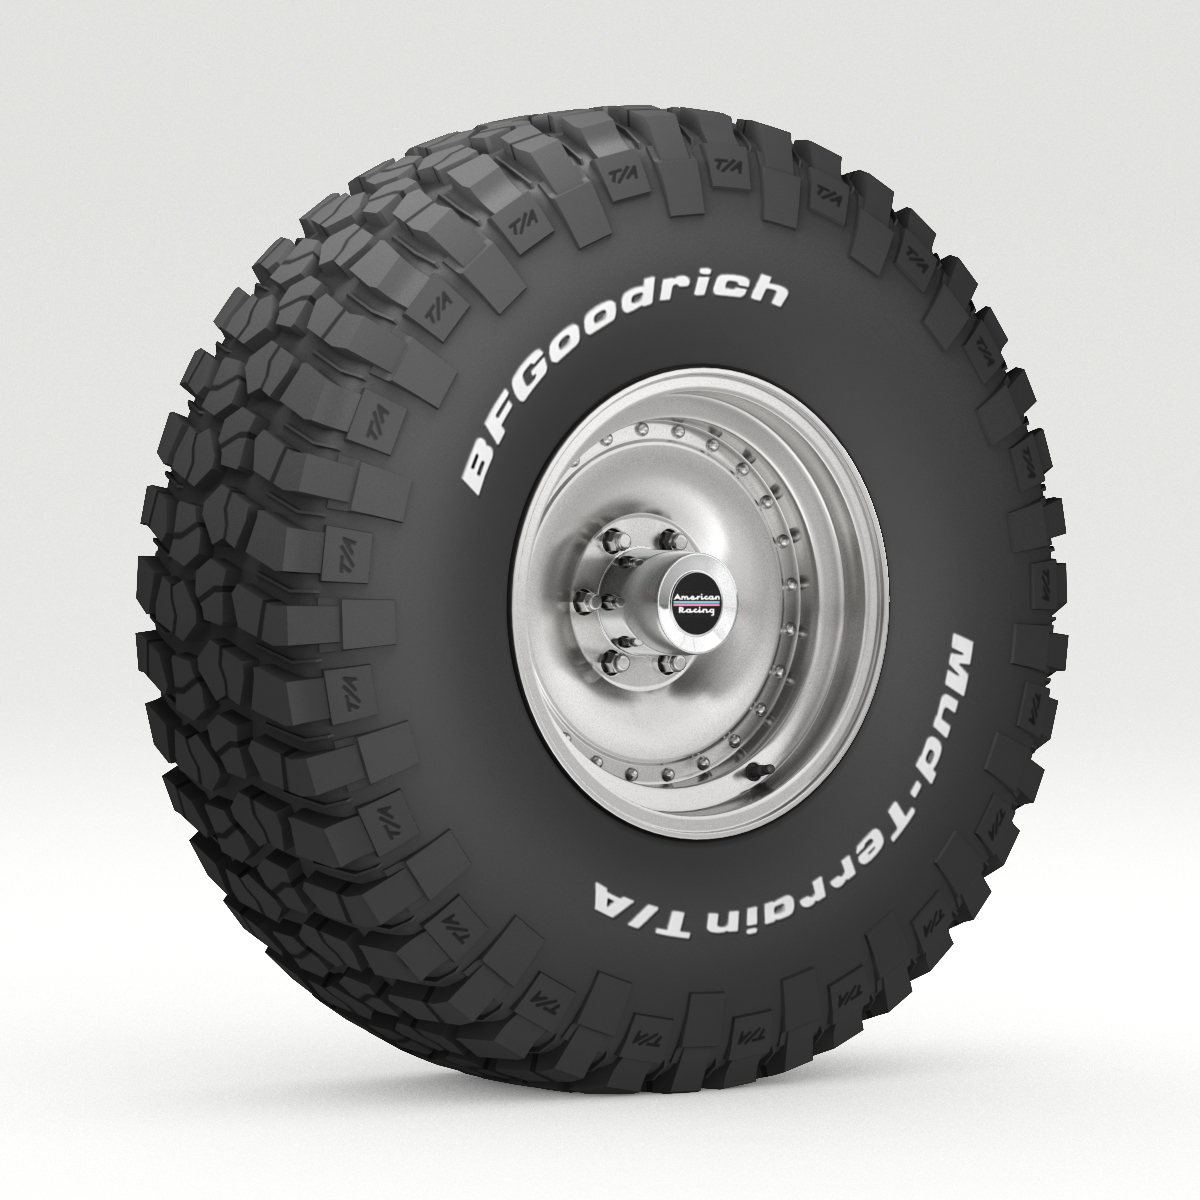 off road wheel and tire 6 3d model 3ds max fbx obj 273551